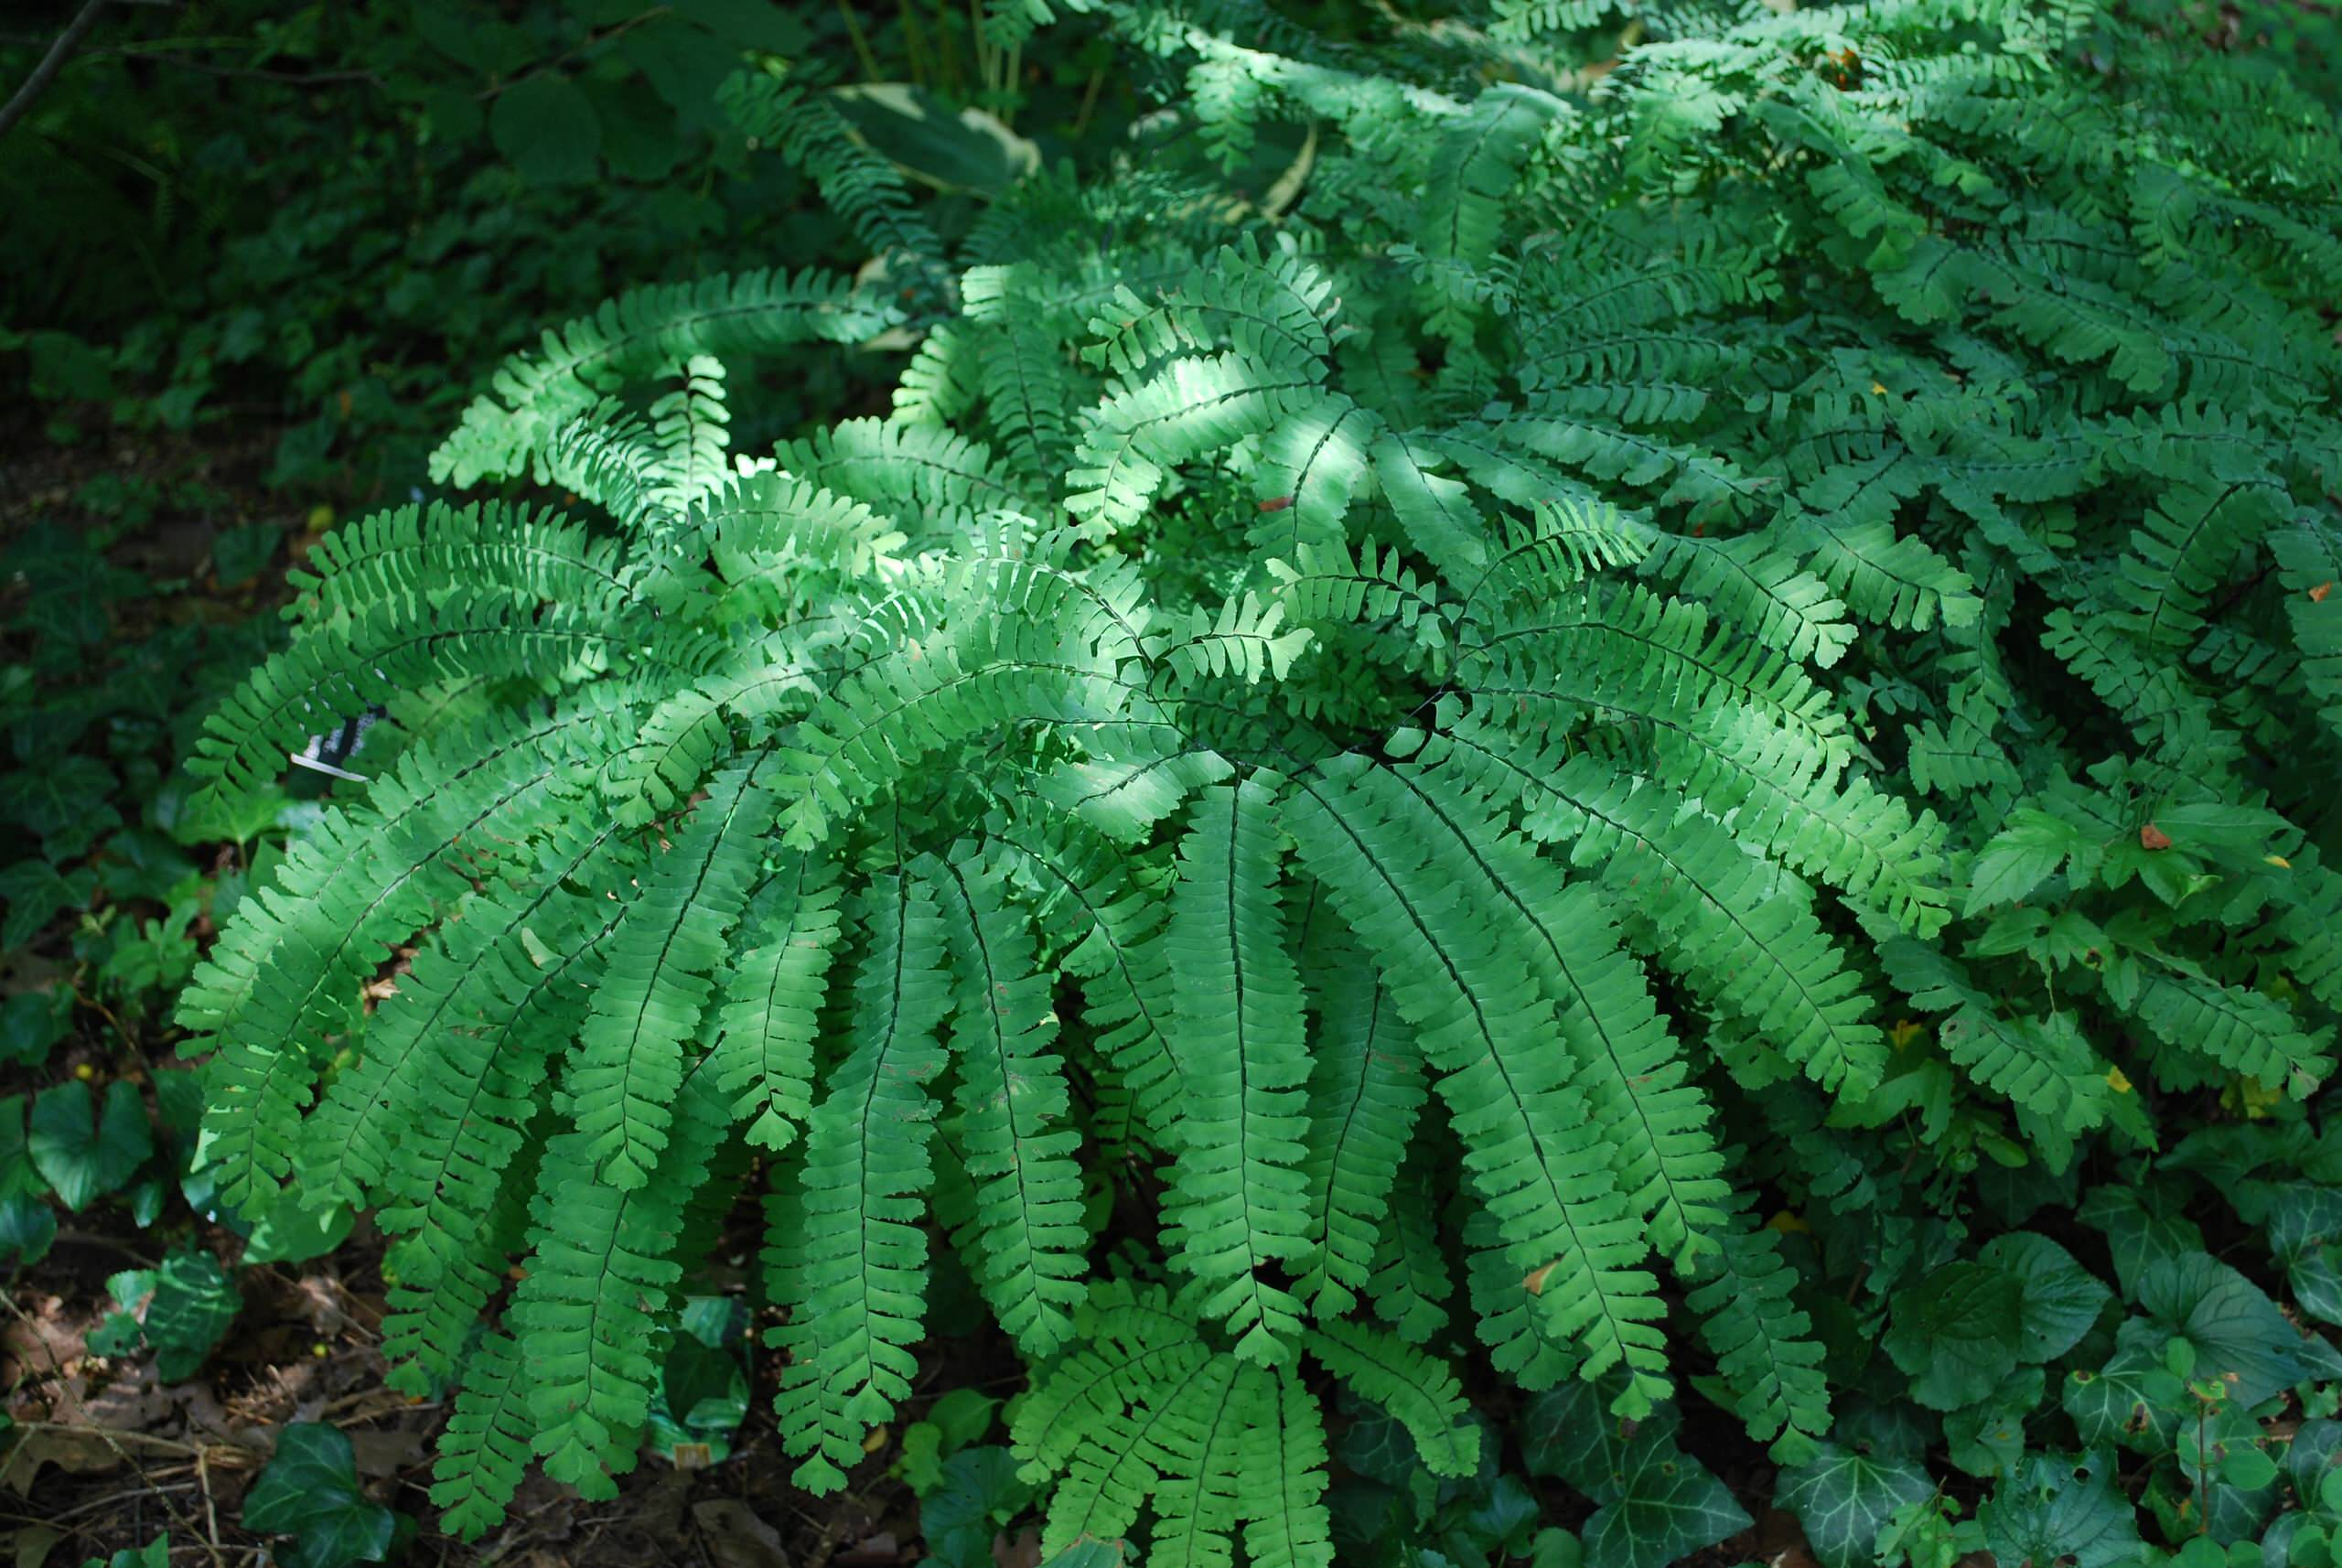 Northern maidenhair fern